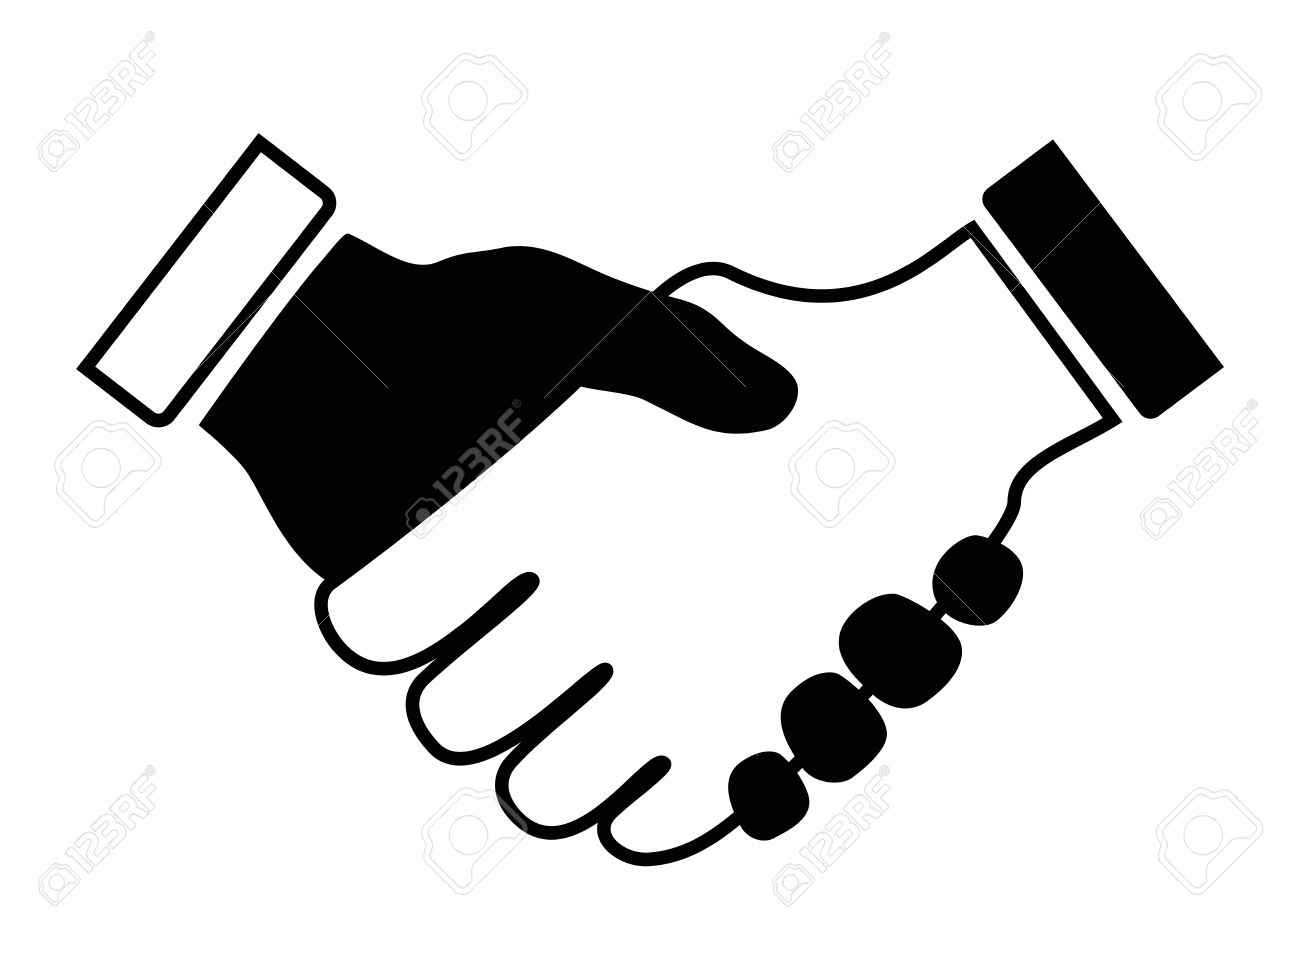 hand shake icon black and white royalty free cliparts vectors and rh 123rf com handshake clipart free handshake clip art images